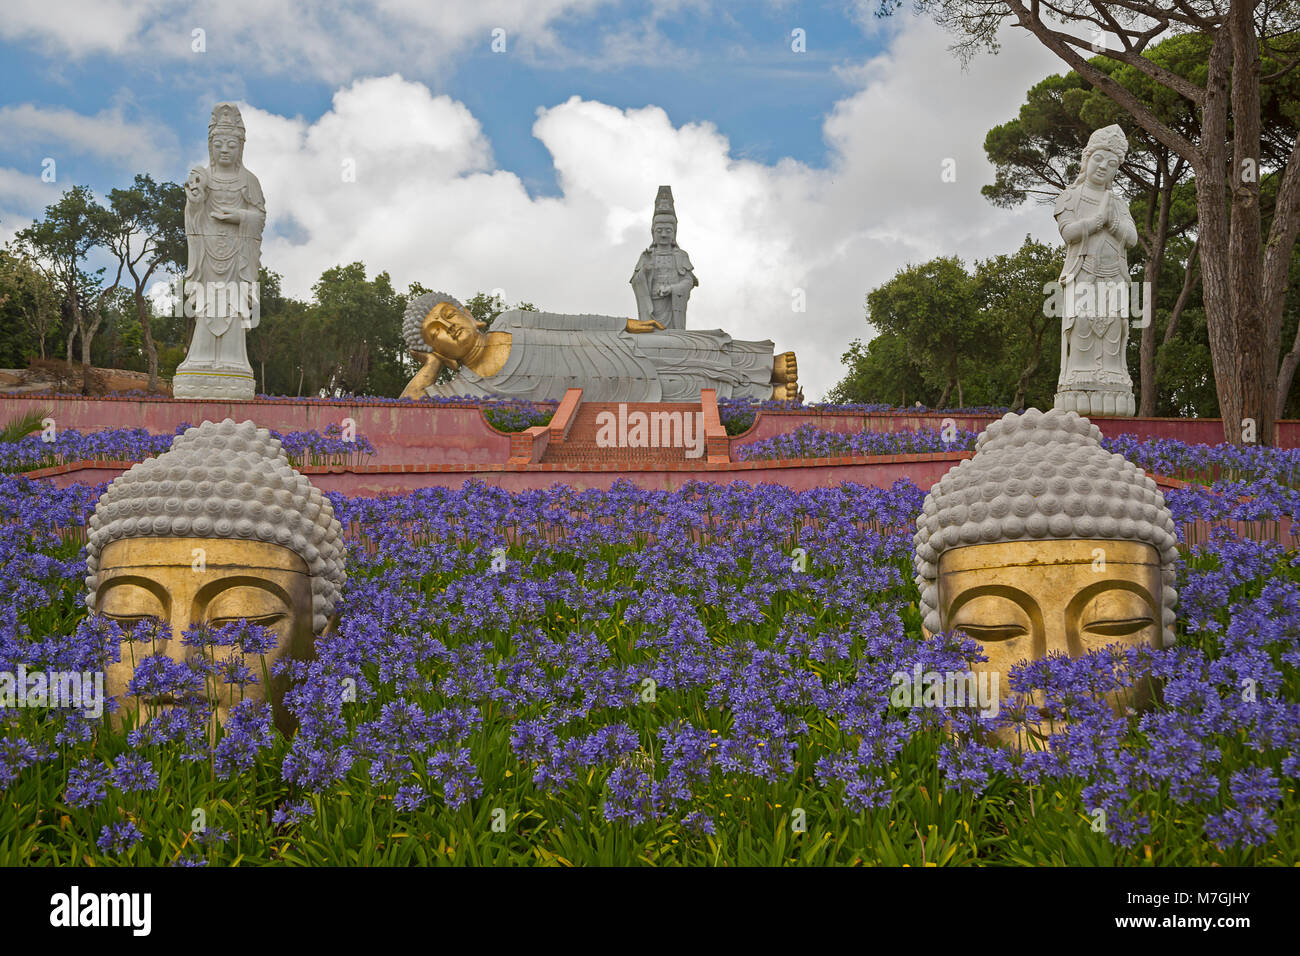 The Buddha Eden Garden is 35 hectares (86 acres) of natural fields, lakes, manicured gardens an hour north of Lisbon. Buddhas, pagodas, terracotta sta Stock Photo